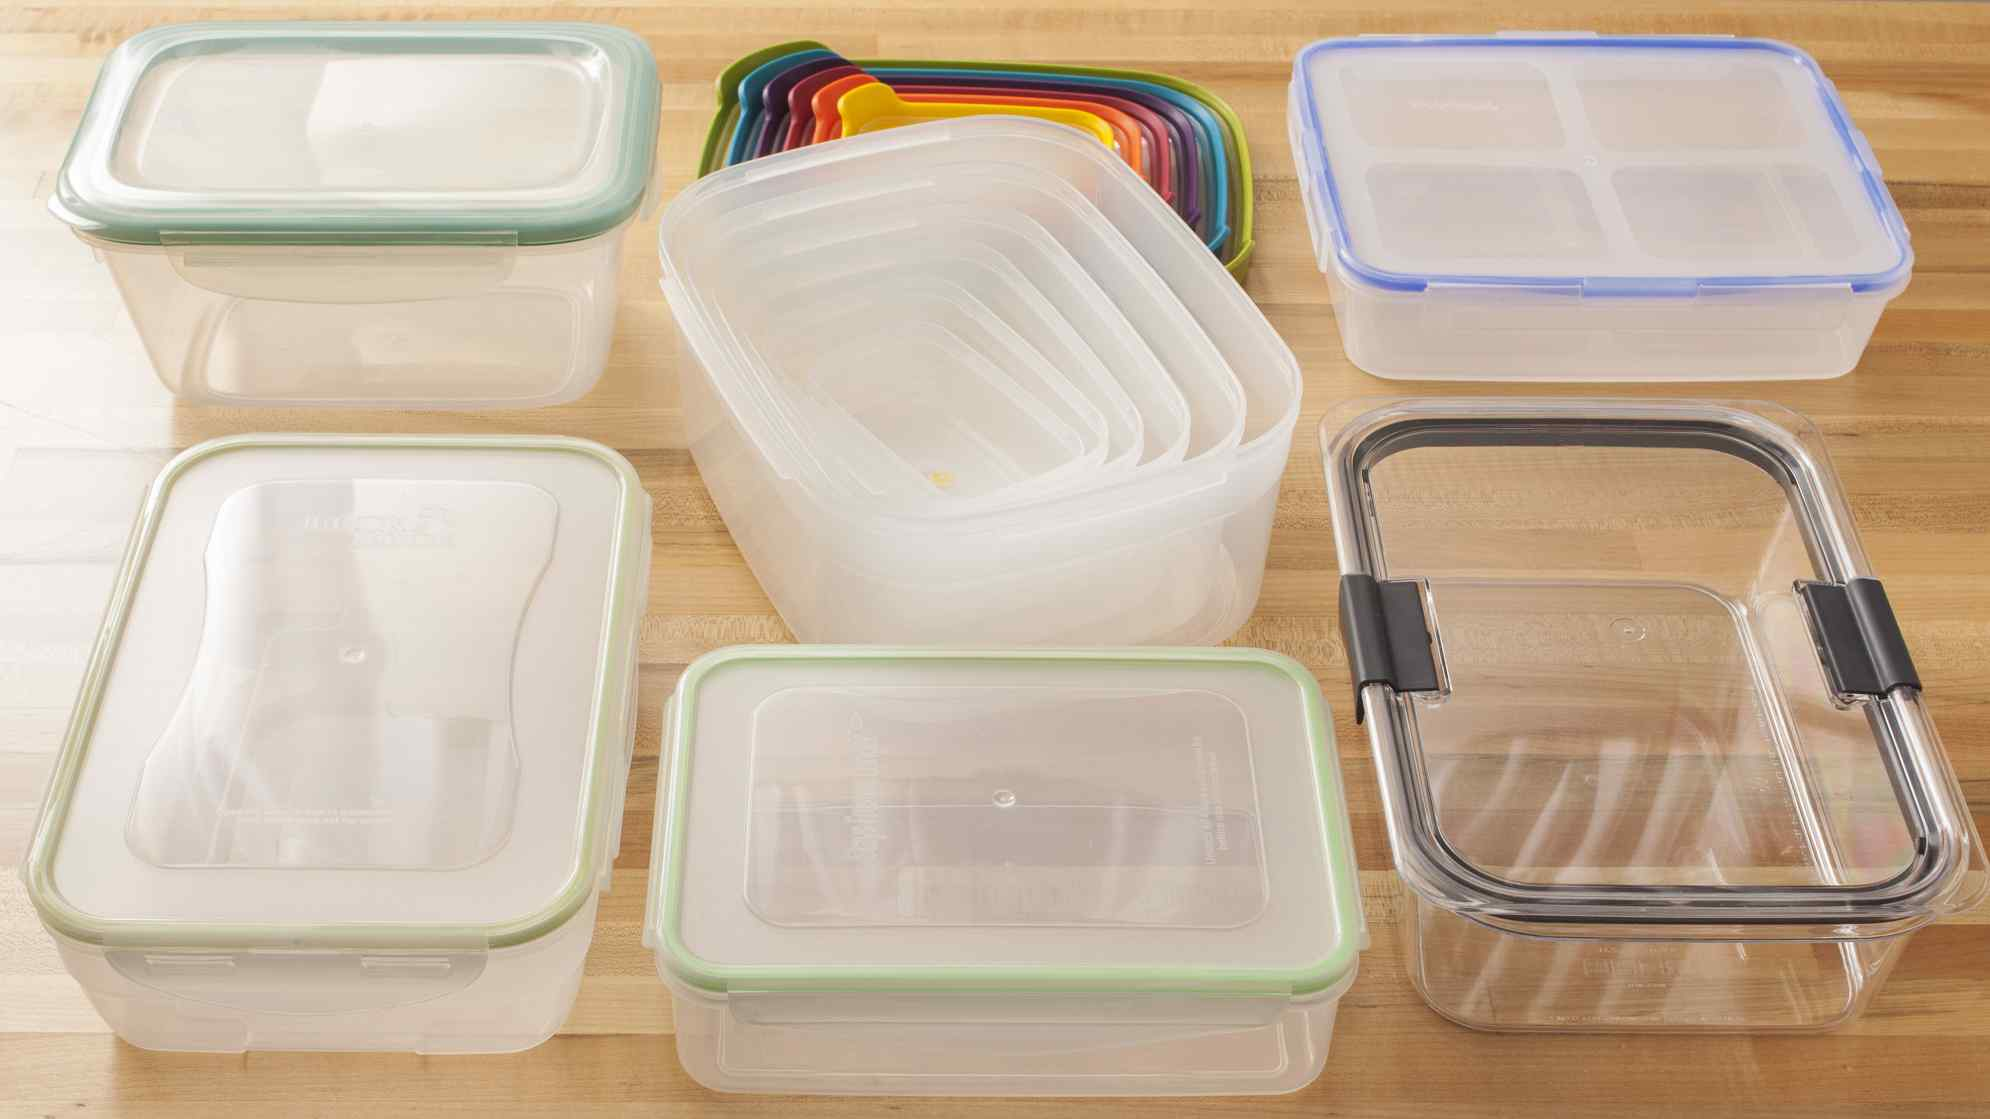 The overall effects of polyethylene for food storage